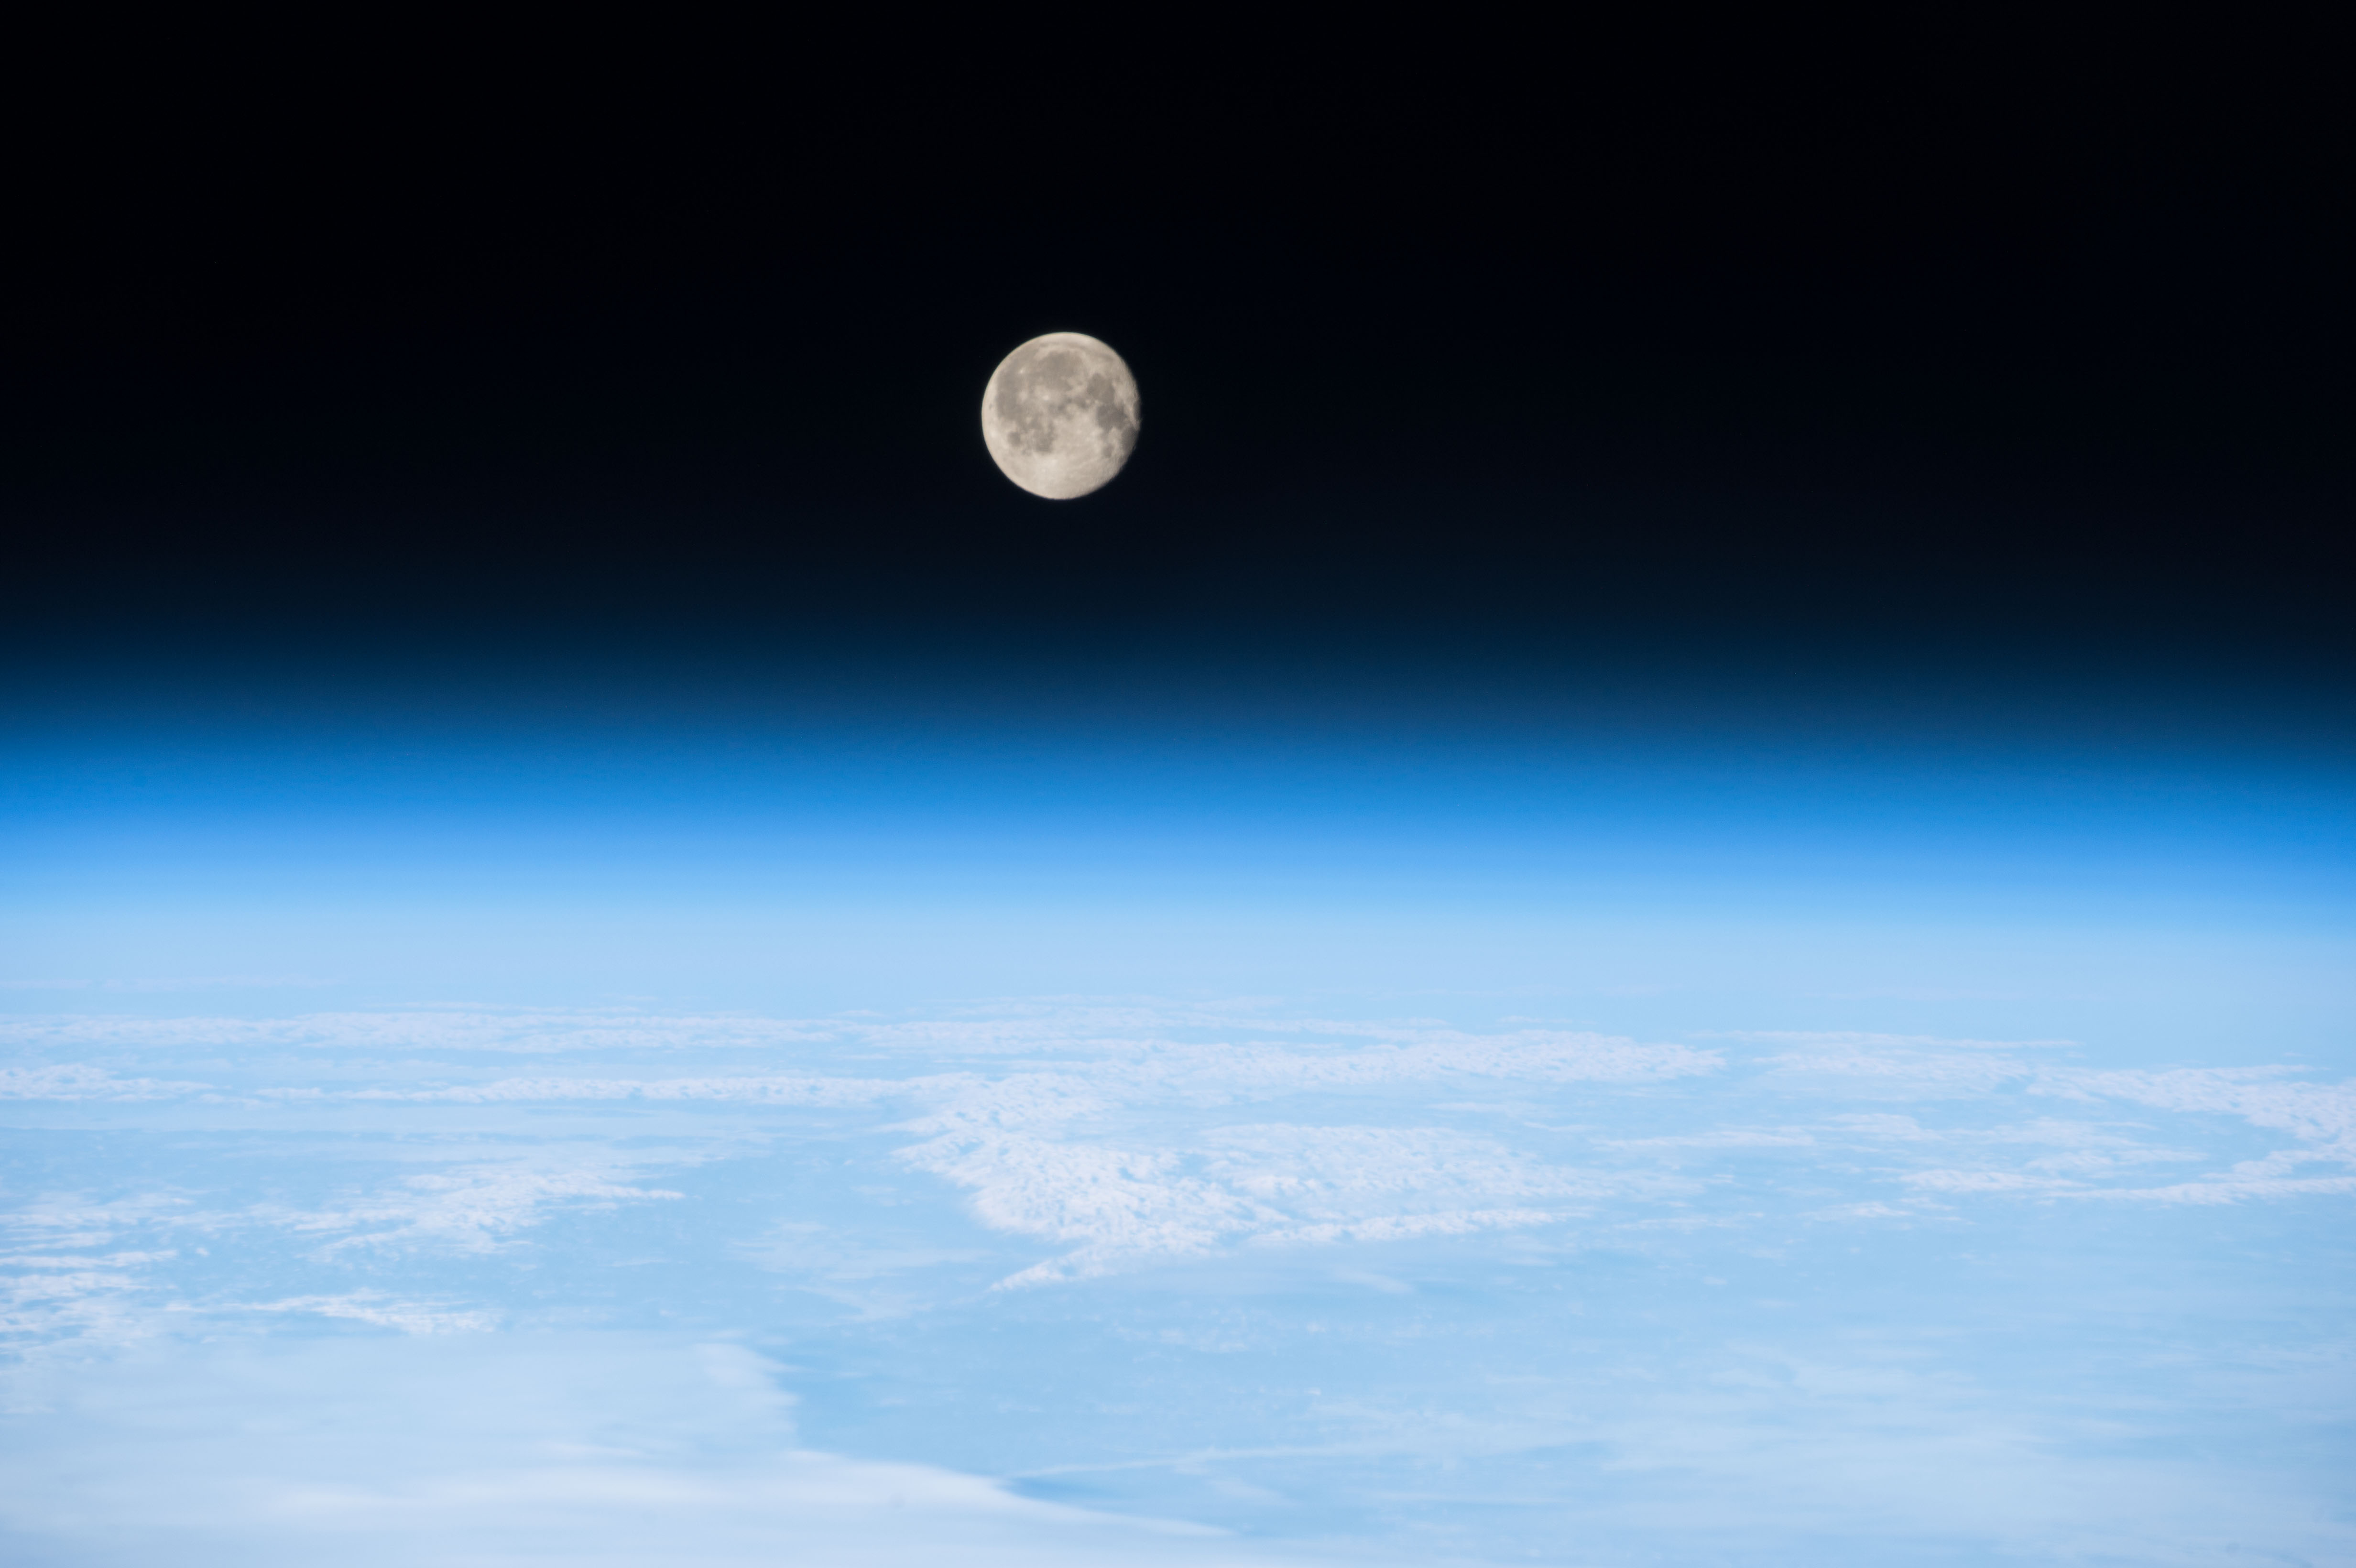 Best Fall Wallpapers File Iss 42 Moon On The Earth S Atmosphere Jpg Wikimedia